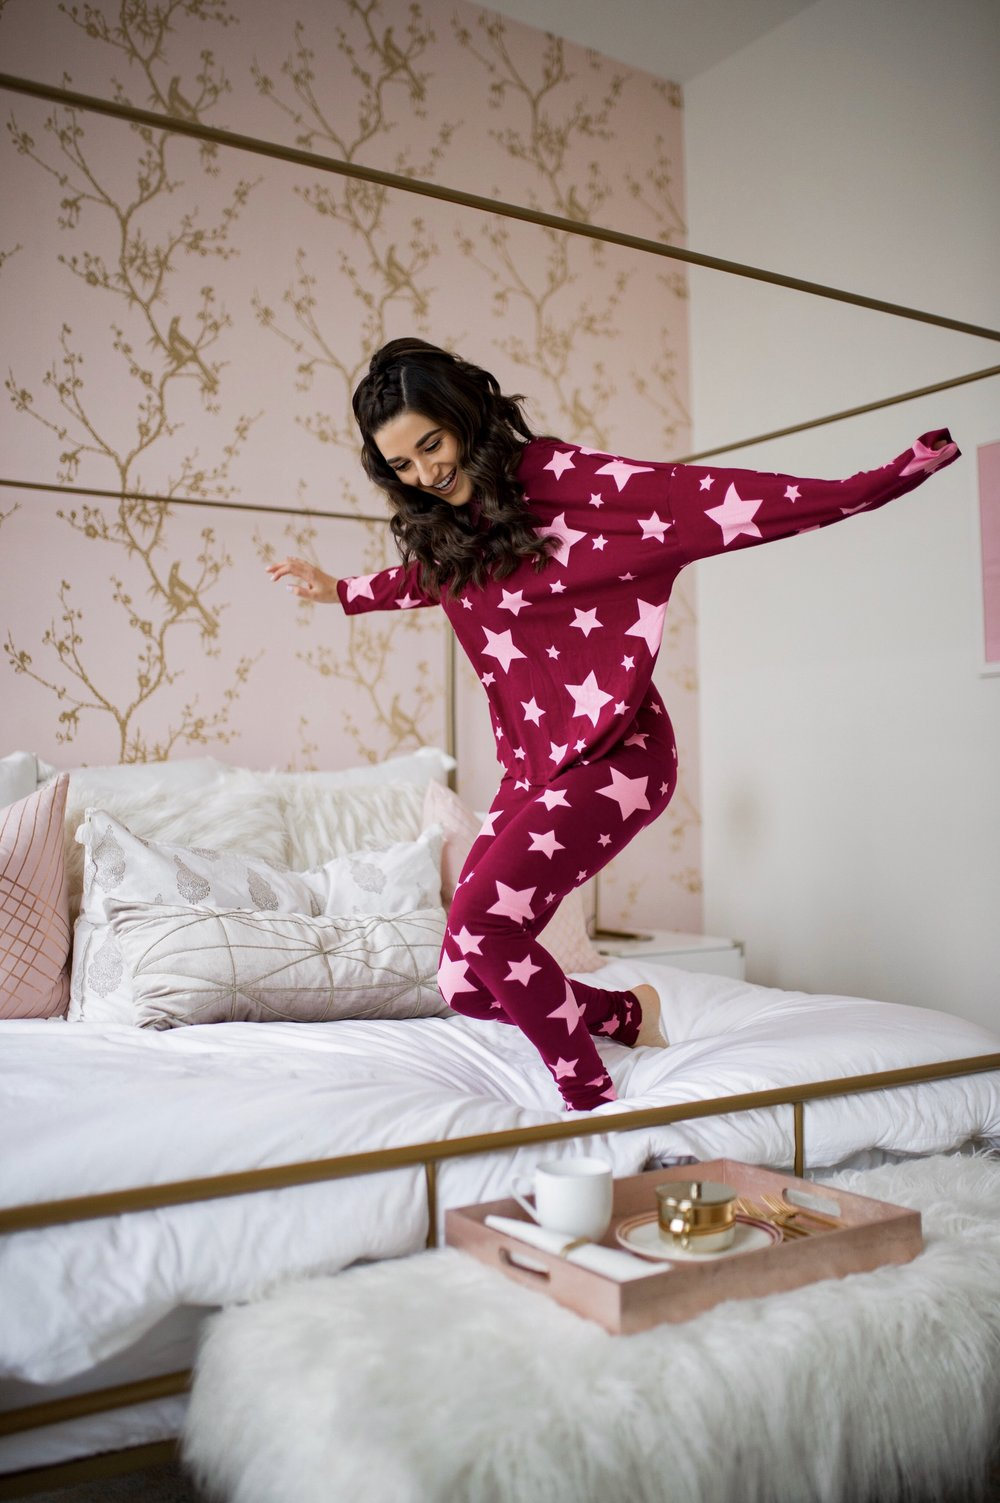 How I Became A Full Time Blogger Pink Star Pajamas Esther Santer Fashion Blog NYC Street Style Blogger Outfit OOTD Trendy Shopping ASOS Shopping Cute Pretty Hairstyle Laurel Creative New York City Penthouse Photoshoot Bedroom Wayfair Furniture Modern .jpg